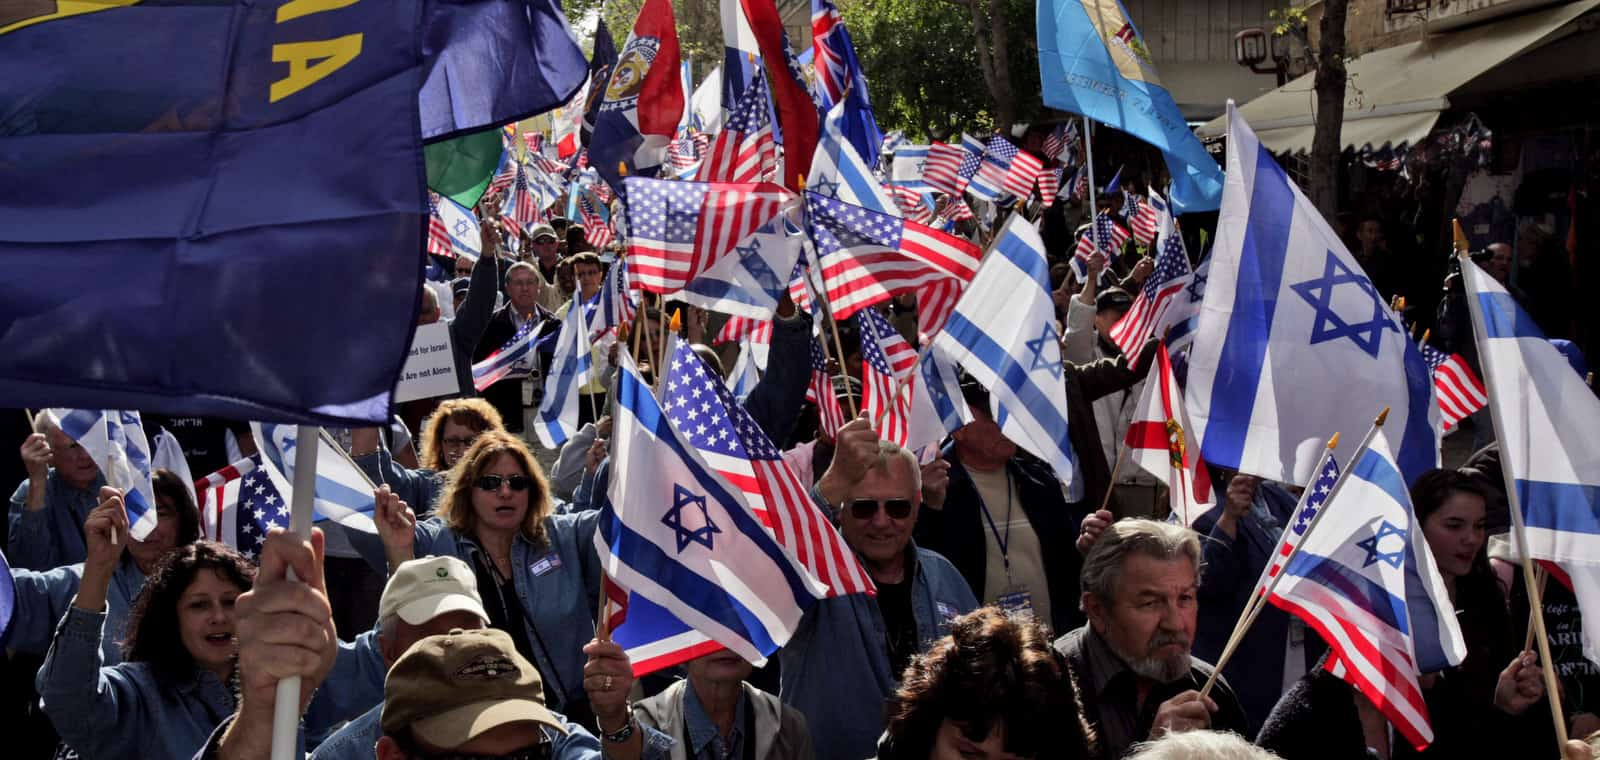 Shaking off the Israel deception